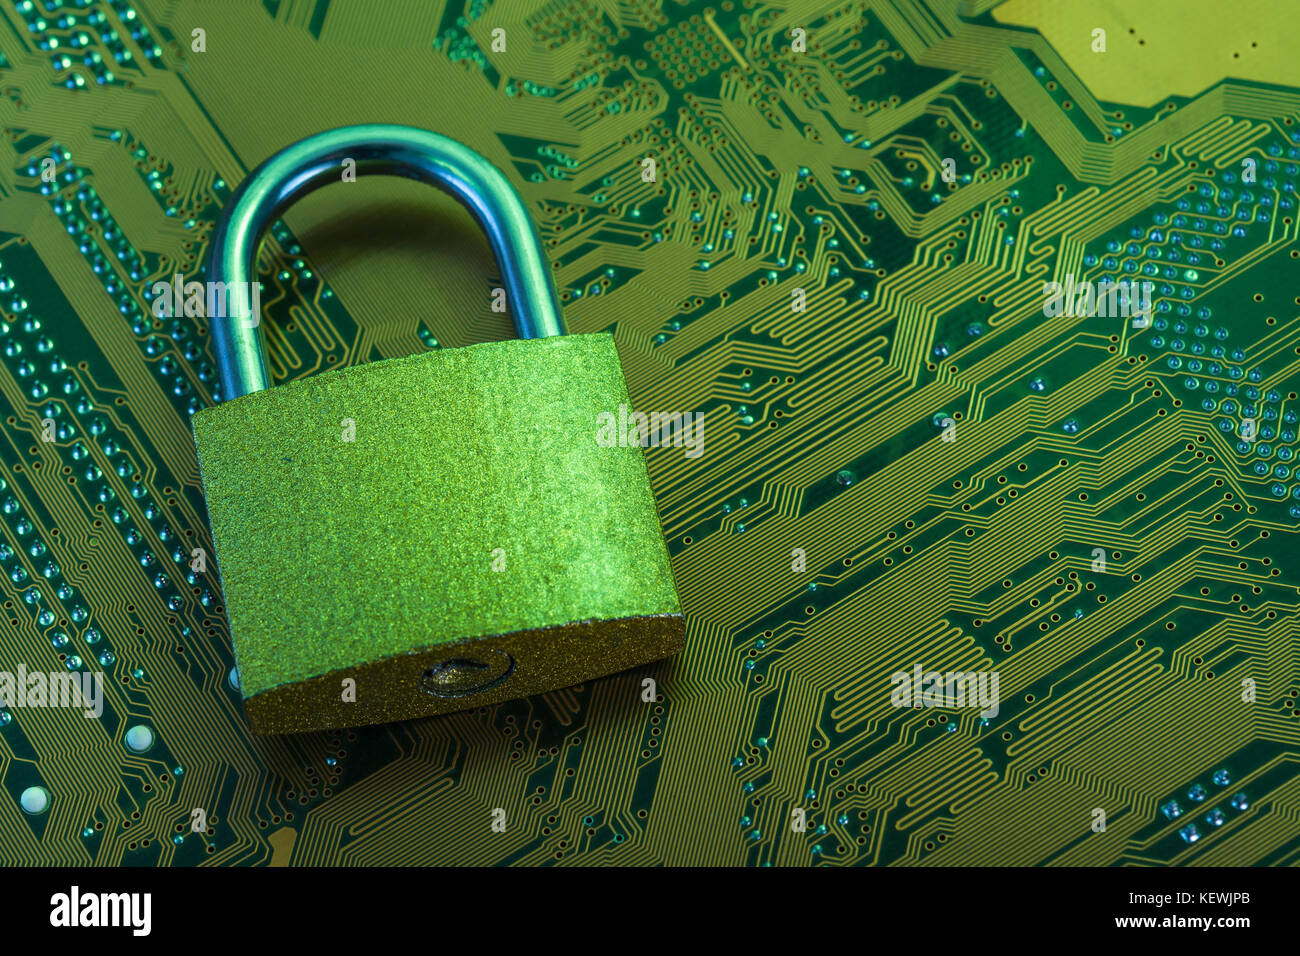 Macro-photo of small padlock on an an electronic circuitboard - metaphor for cyber security, data breach, hacking,secure - Stock Image